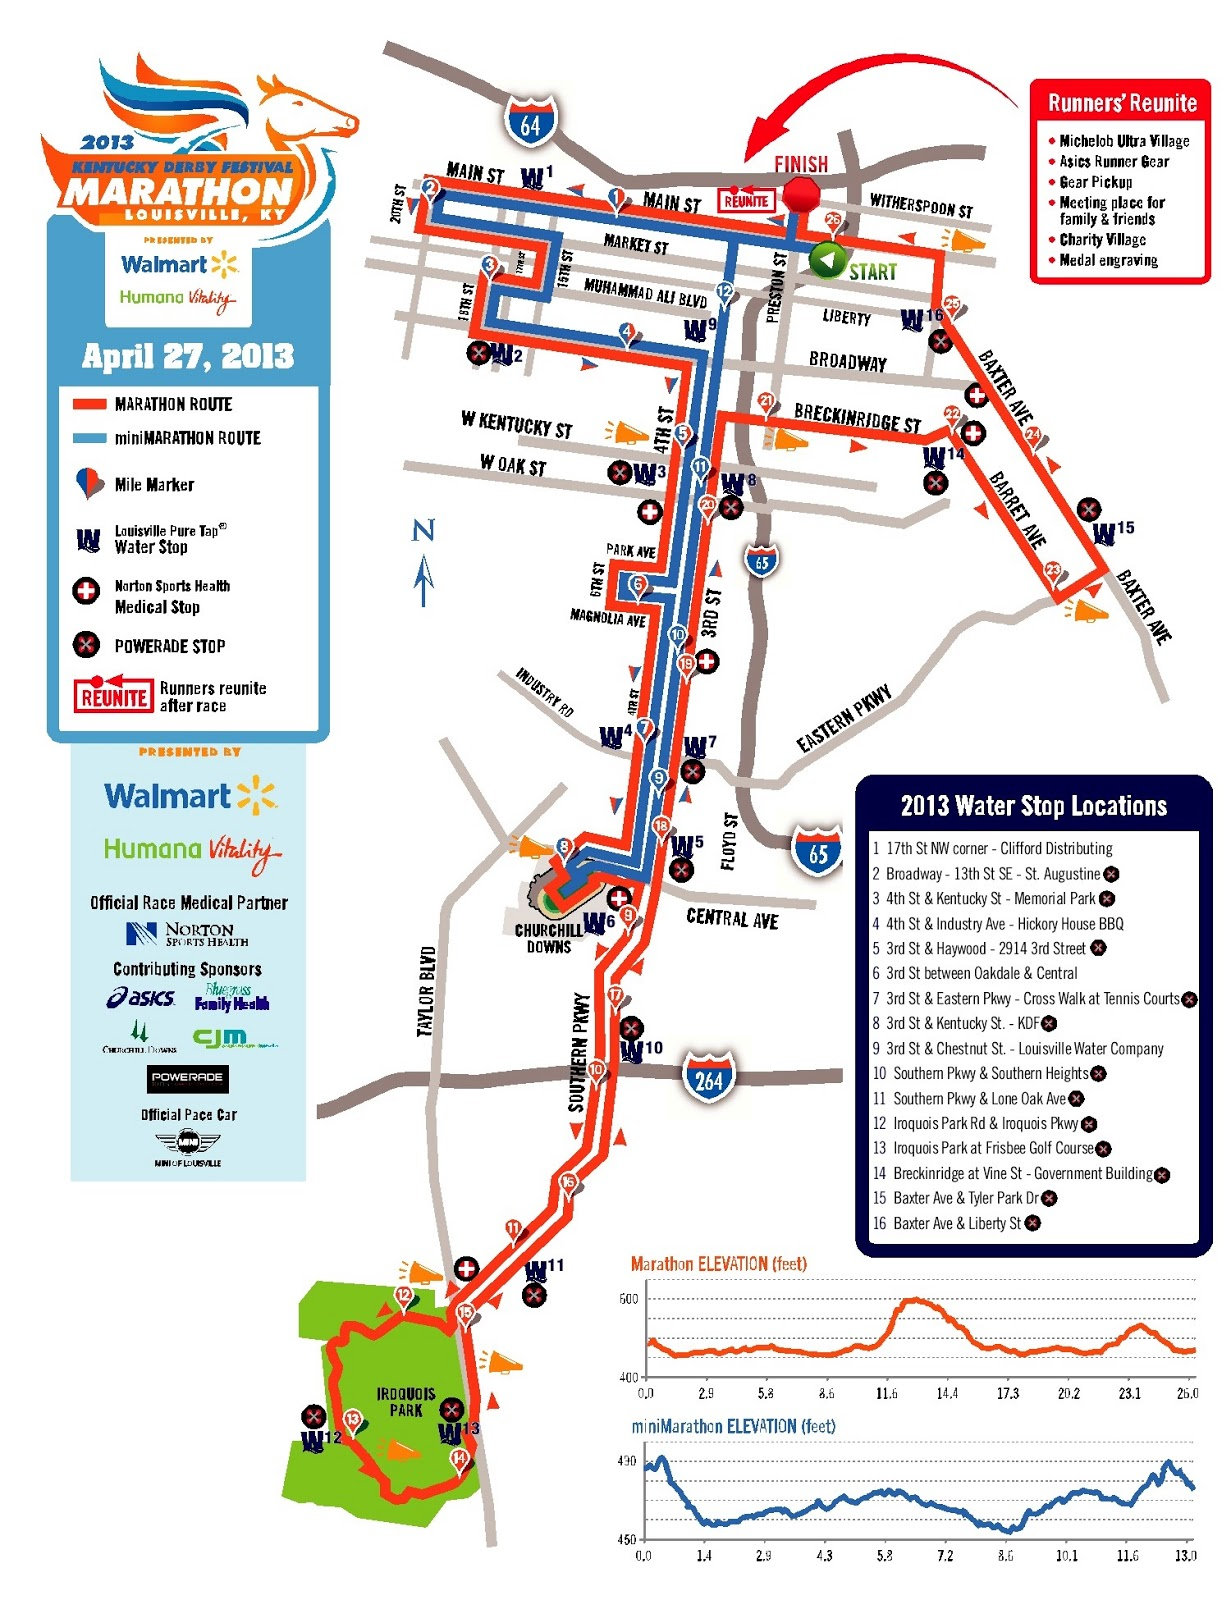 here is a picture of the course map and elevation